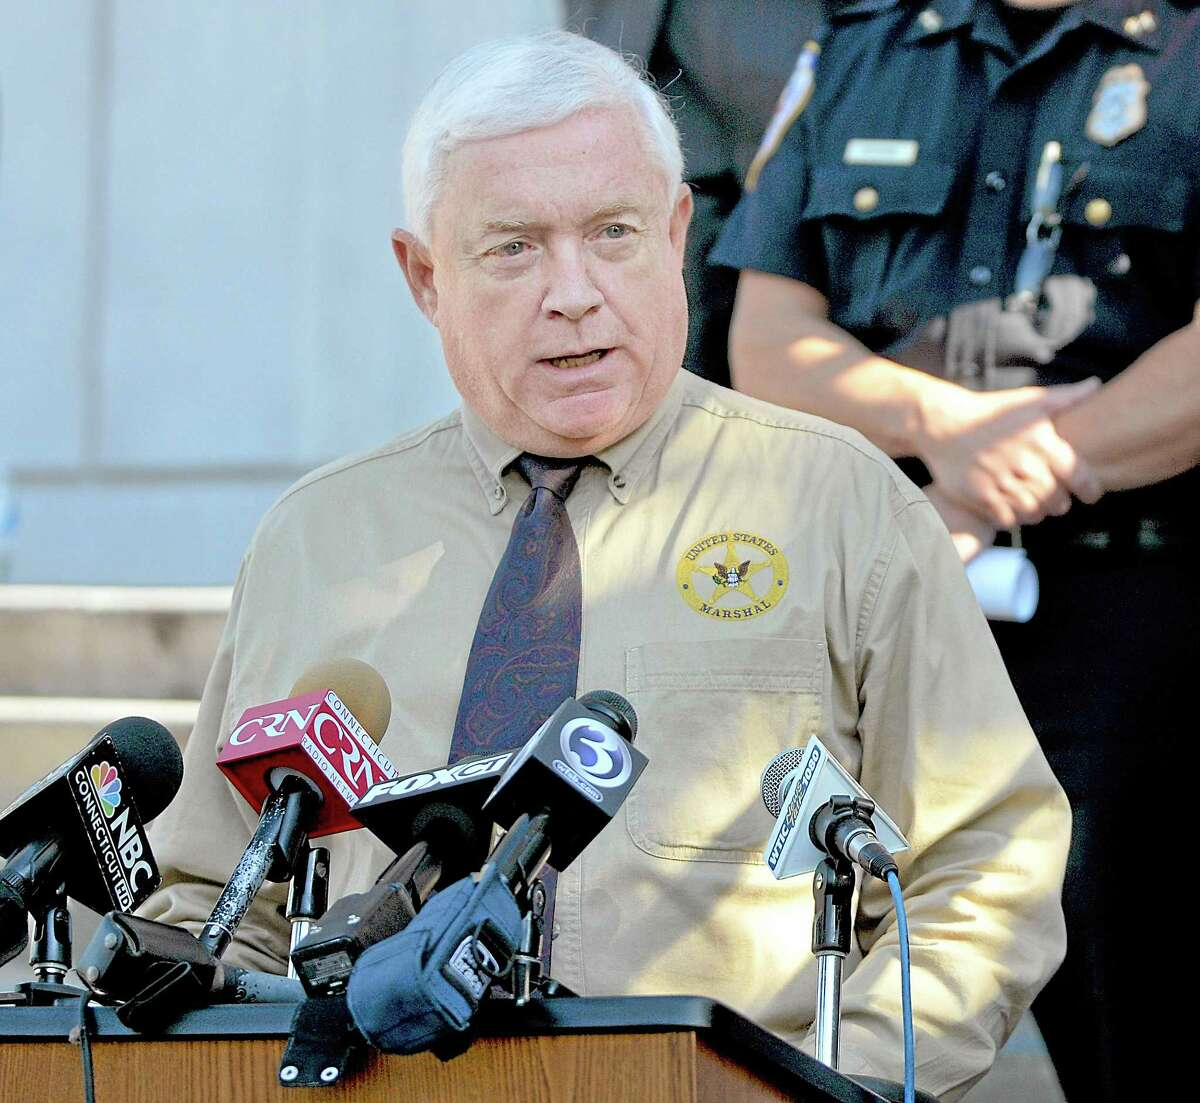 Joseph Faughnan, United States Marshal spoke at a press conference Monday afternoon at Middlesex Superior Court. Faughnan said,